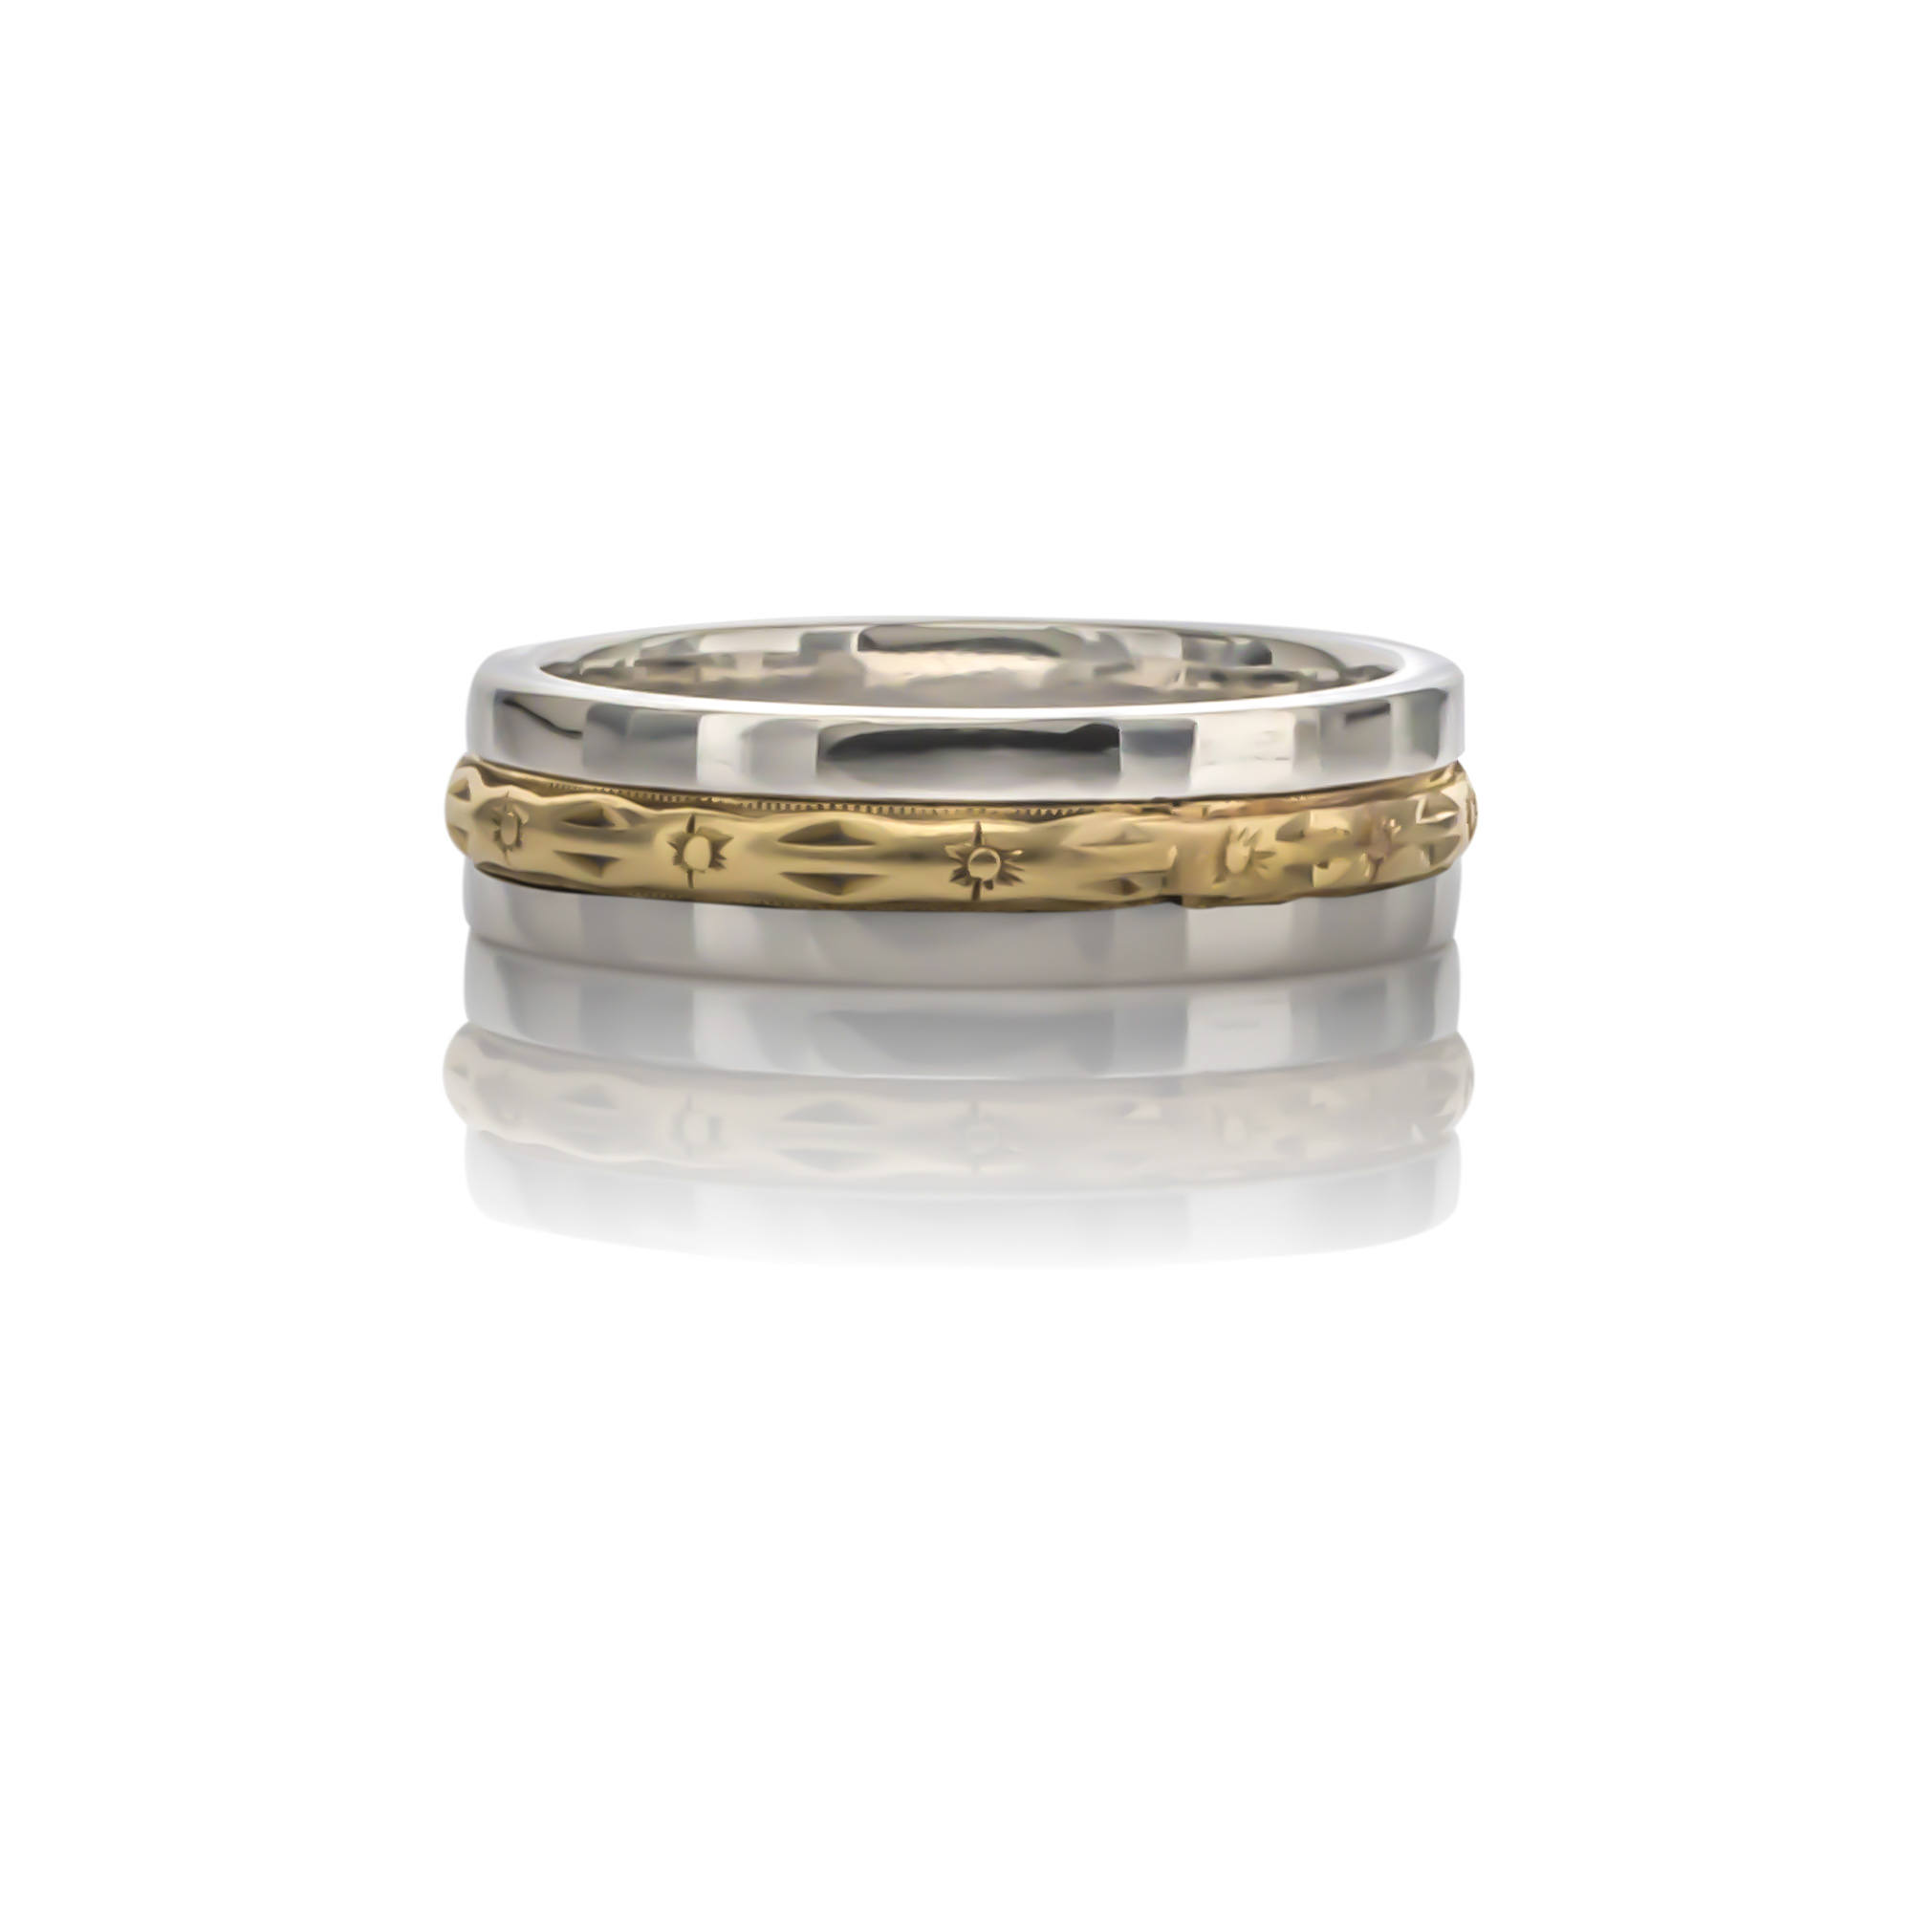 CUSTOM TWO-TONE MENS WEDDING BAND designed  this modern men's platinum wedding band to feature our client's grandfather's 14K yellow band as an inlay.